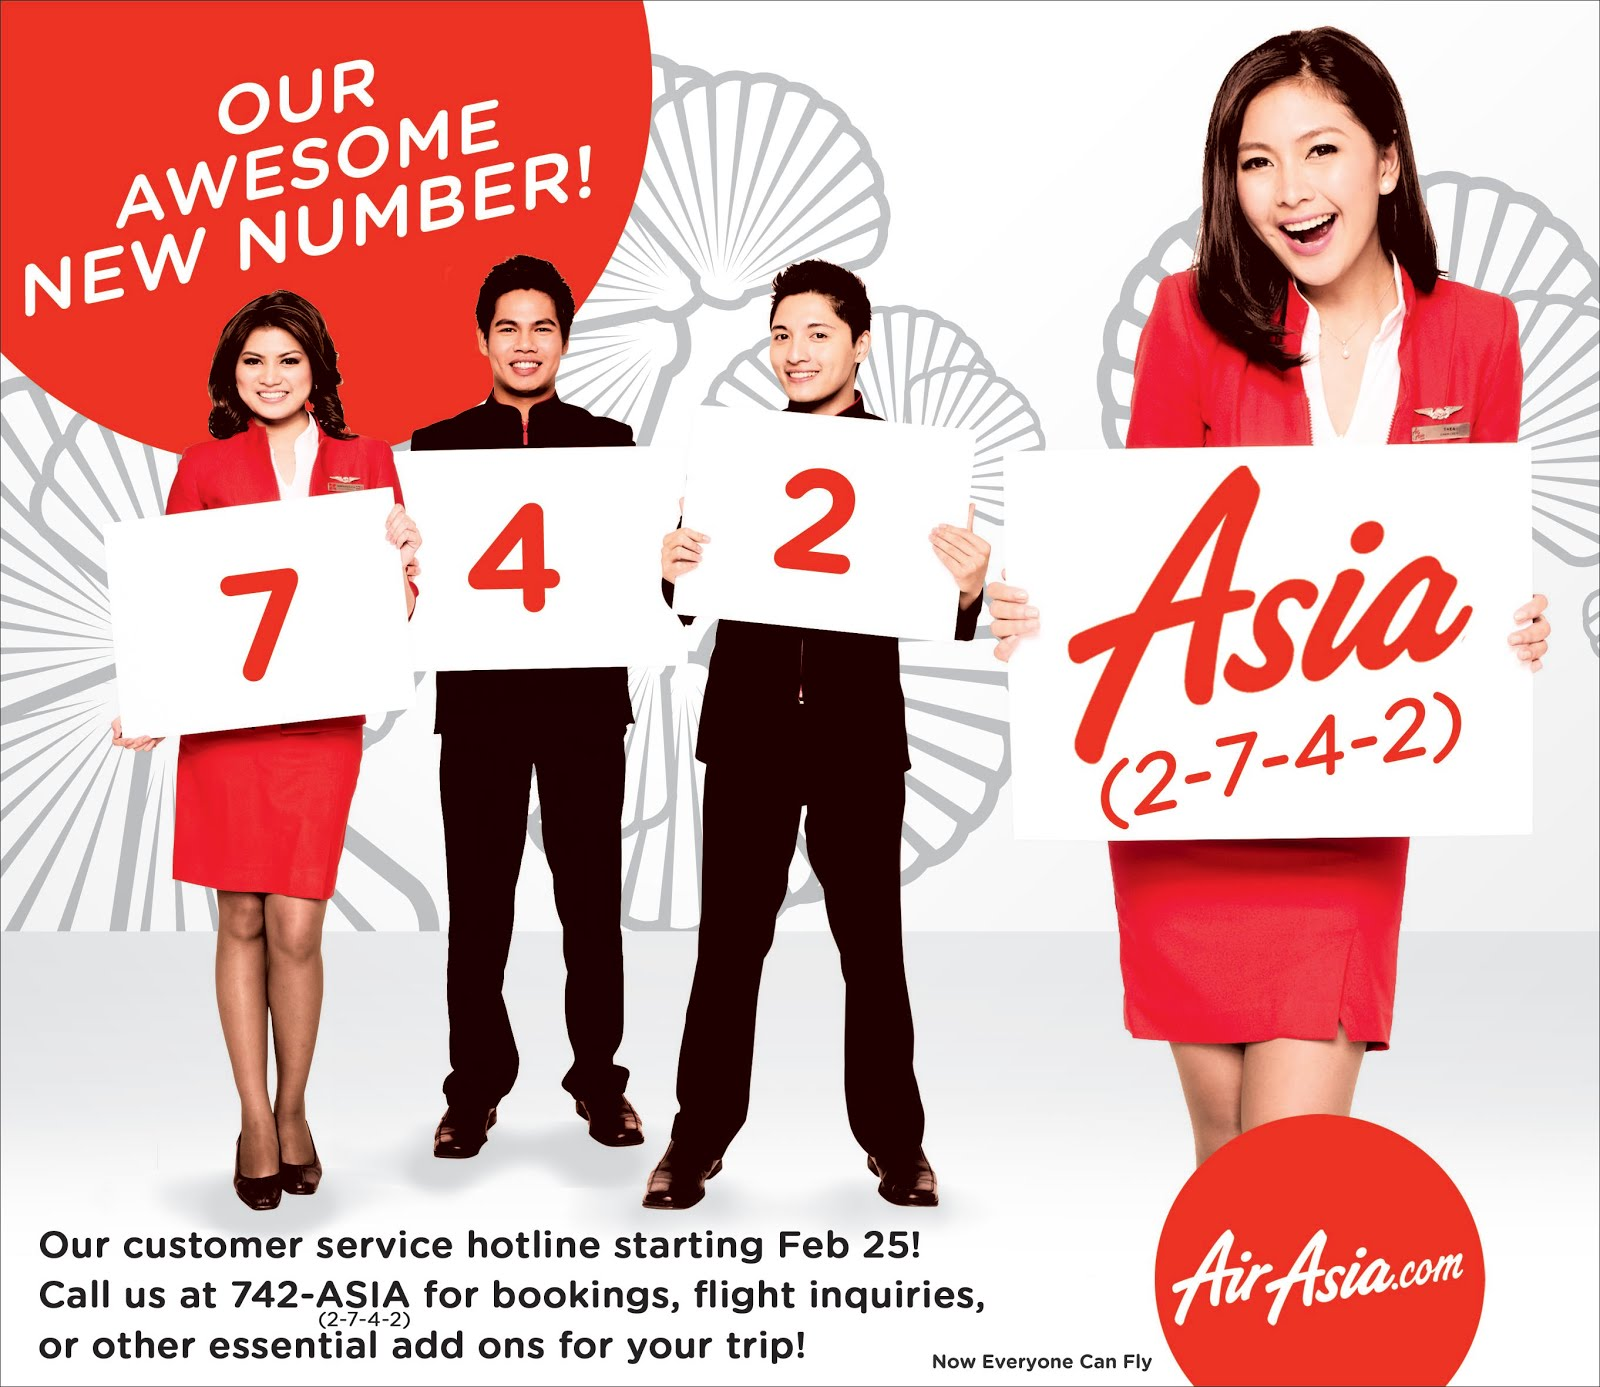 Philippines' AirAsia customer hotline 742-ASIA and now accept ...